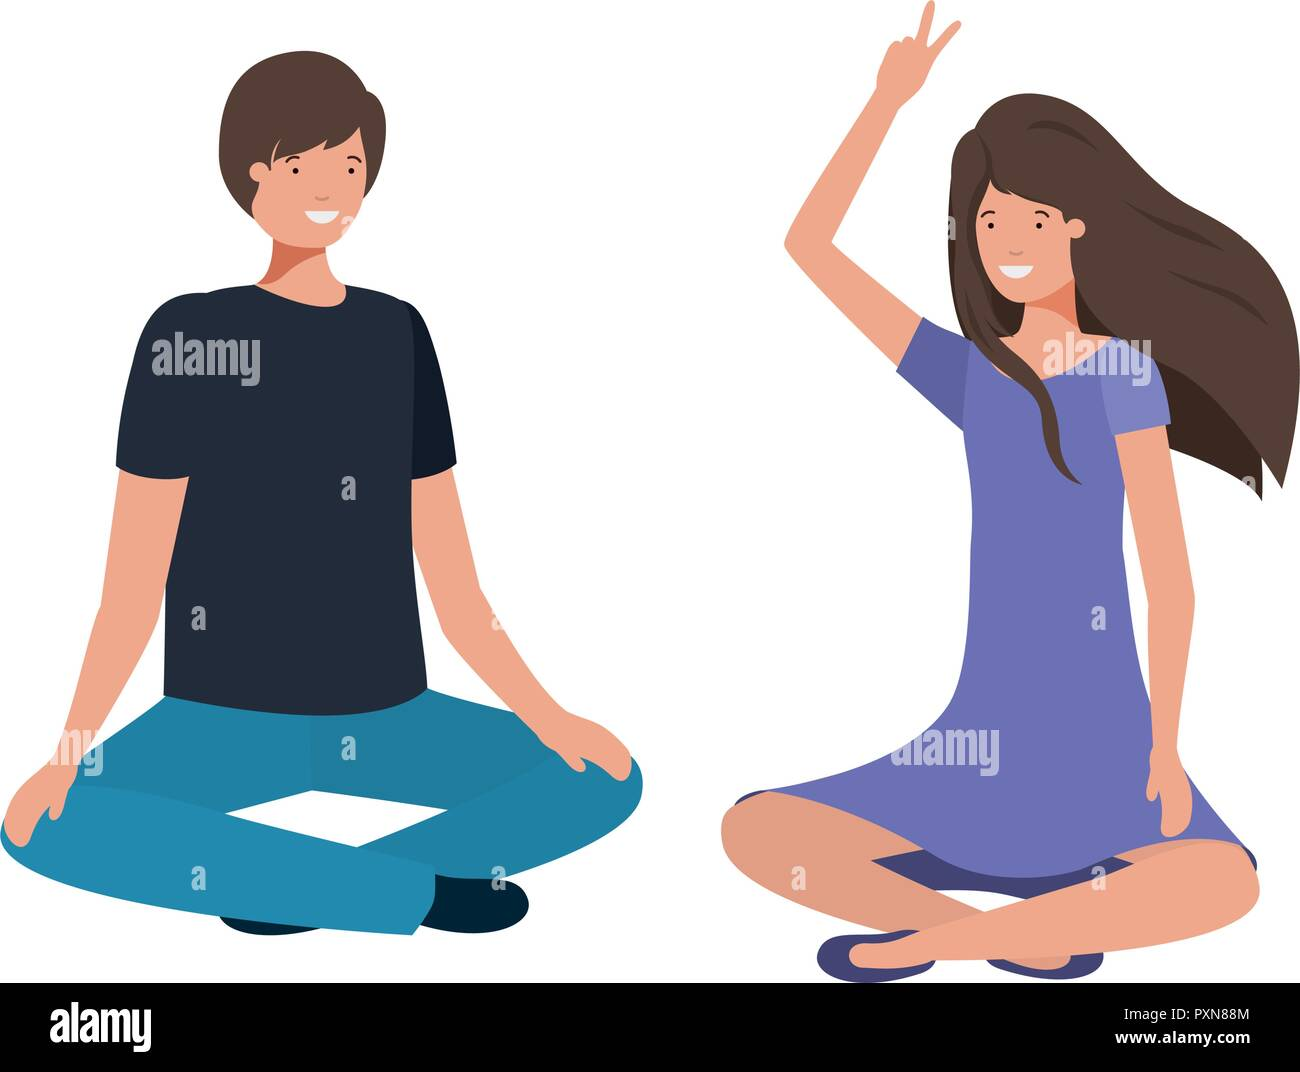 couple with crossed feet avatar character - Stock Vector